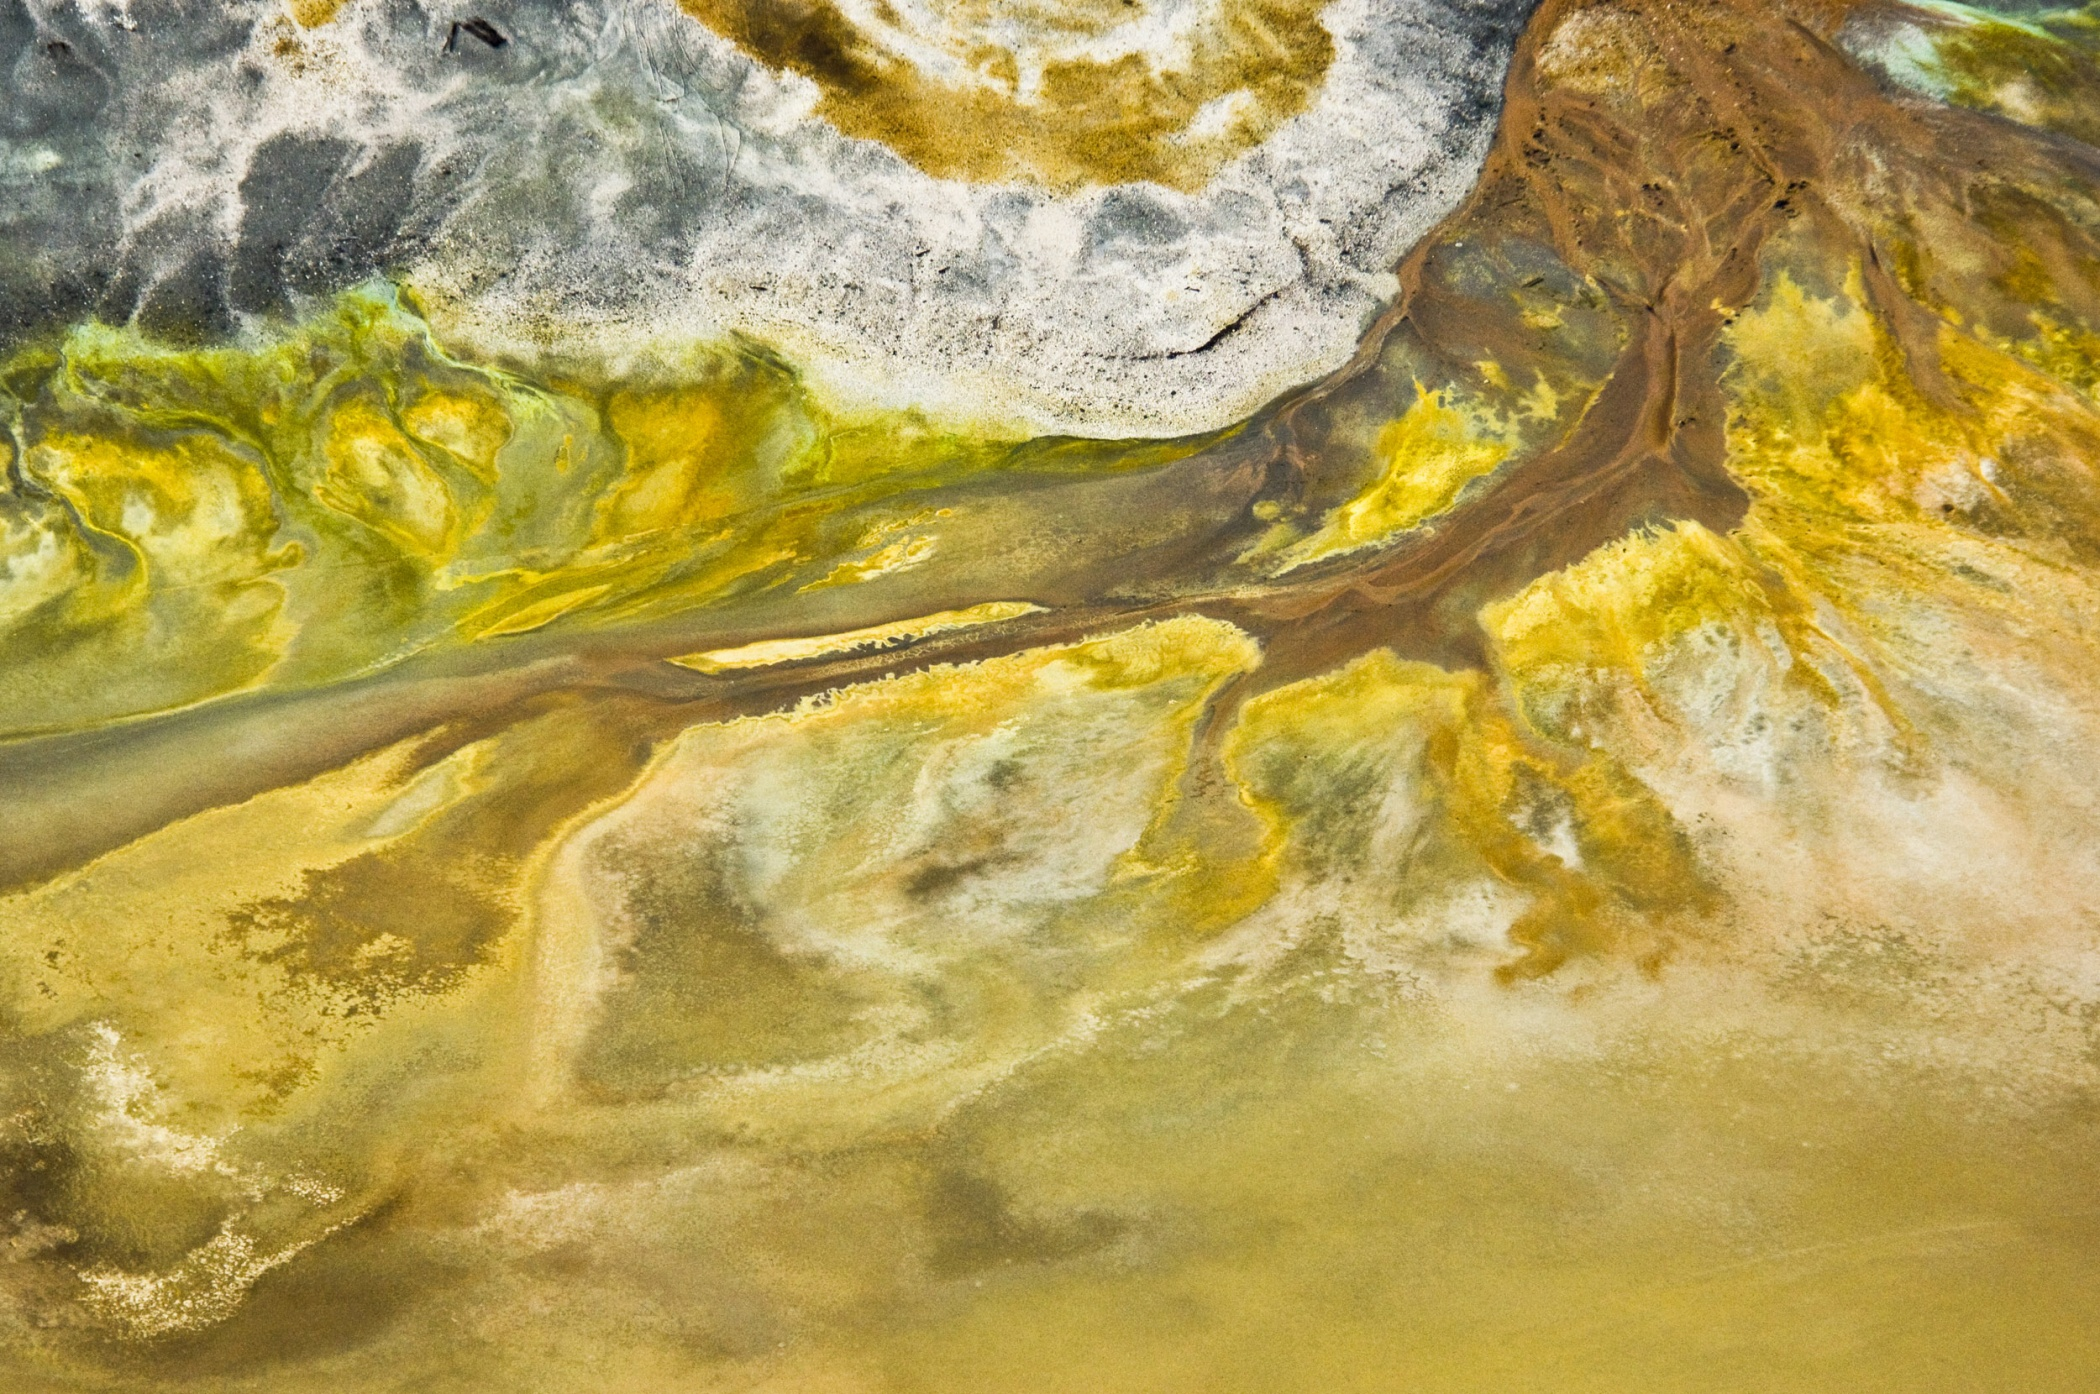 Colour palette - Volavérunt - Hector Garrido, Aerial and human photography